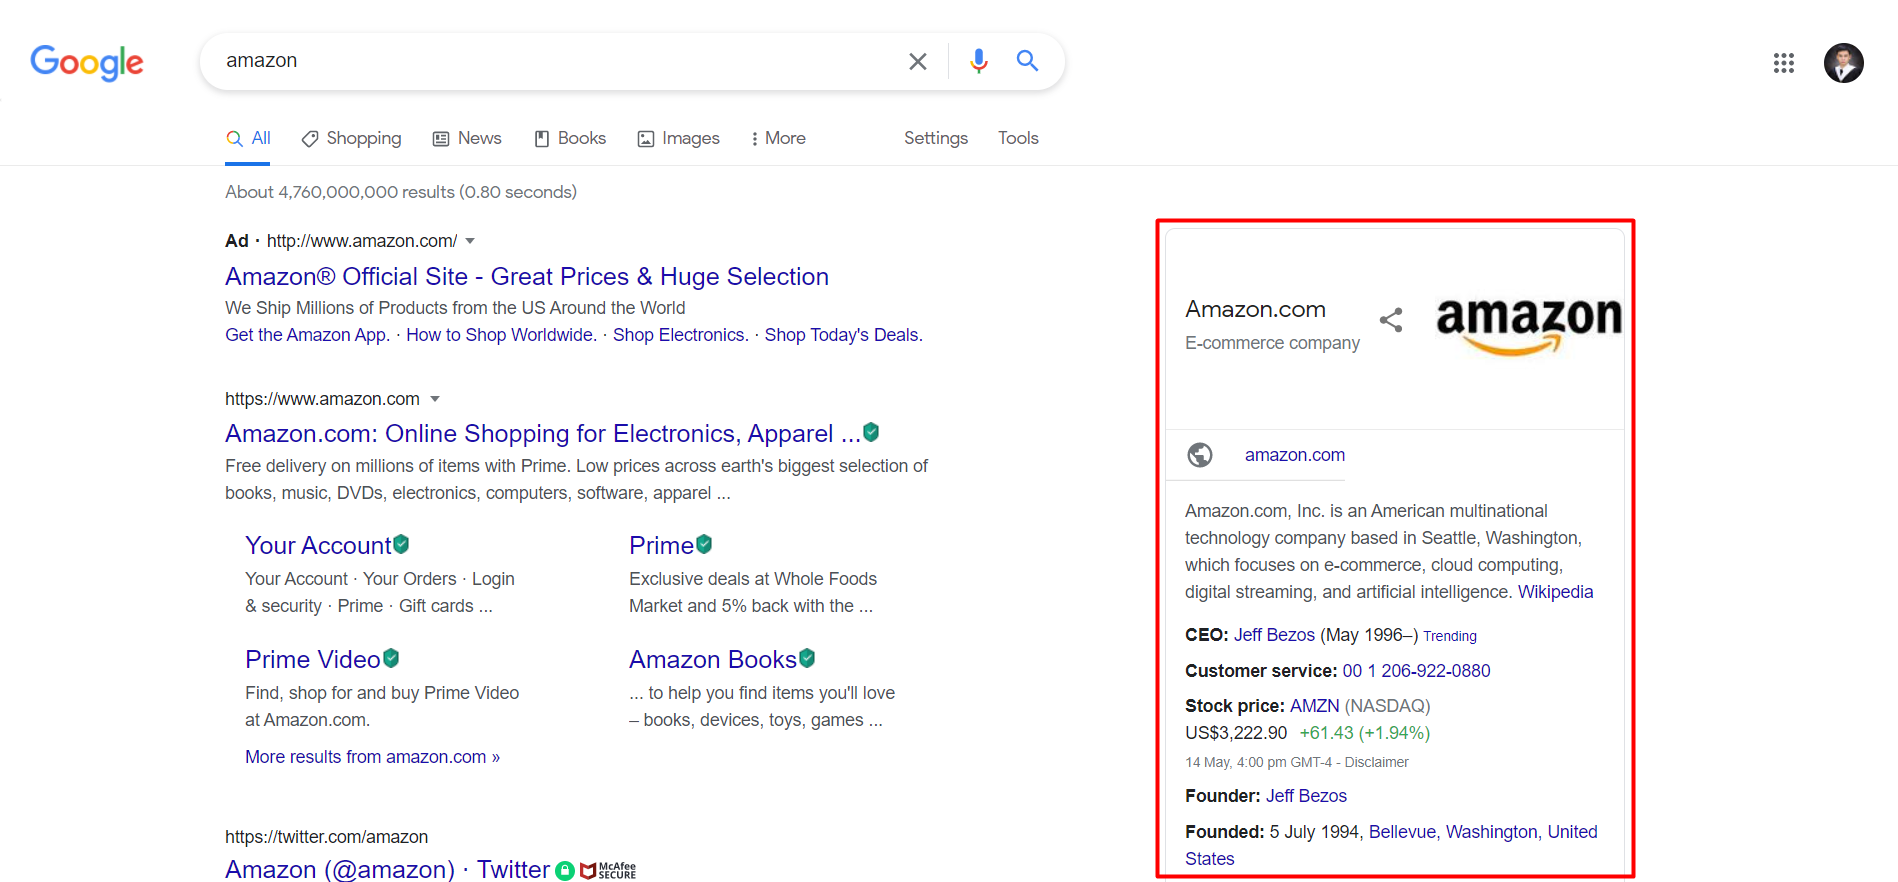 """Difference Between Keywords and Entities Information box on the entity """"amazon"""" created by Google's Knowledge Graph"""